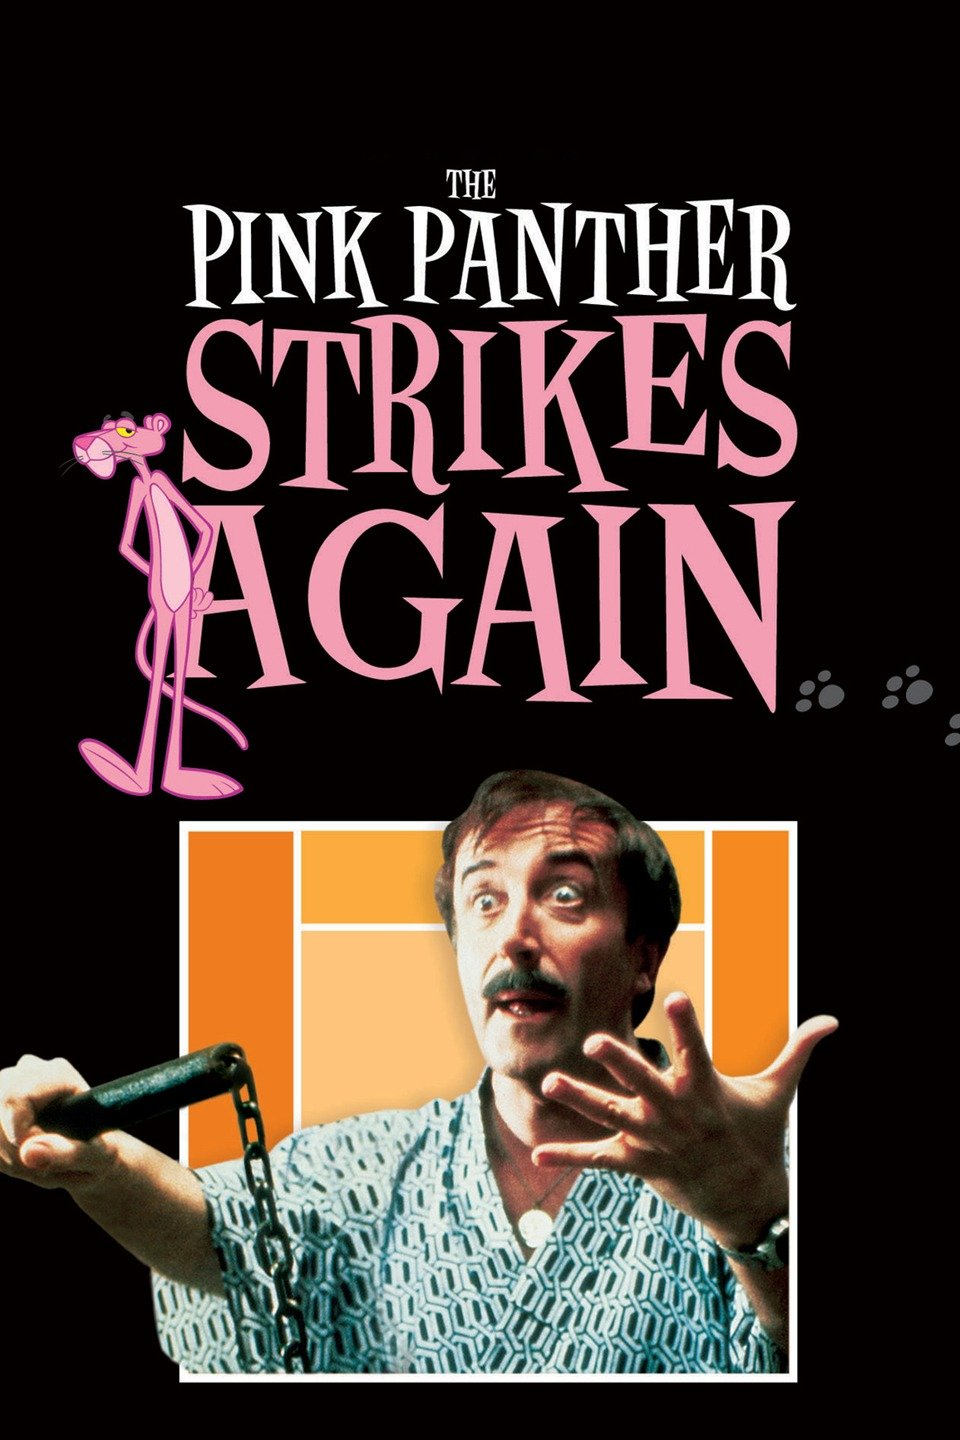 The Pink Panther Strikes Again (1976) - Directed by: Blake EdwardsStarring: Peter Sellers, Herbert Lom, Burt KwoukRated: Running Time: 1 h 43 mTMM Score: 4 stars out of 5STRENGTHS: Peter Sellers, Humor, PacingWEAKNESSES: Farfetched Premise